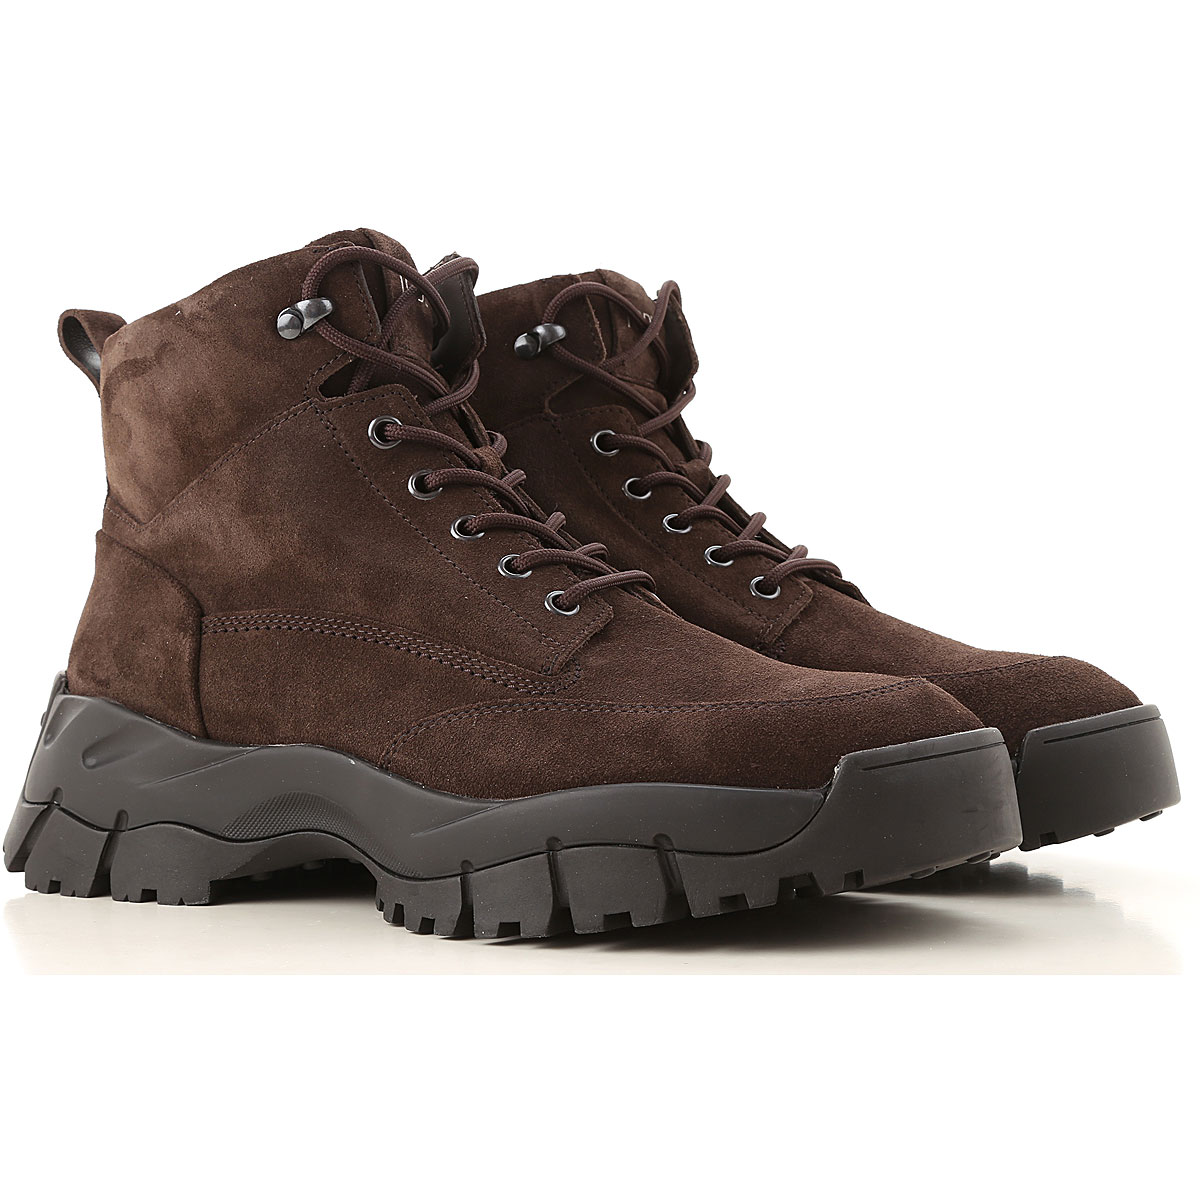 Tods Boots for Men, Booties On Sale in Outlet, Dark Brown, Suede leather, 2019, 10 10.5 12 7 8 8.5 9 9.5